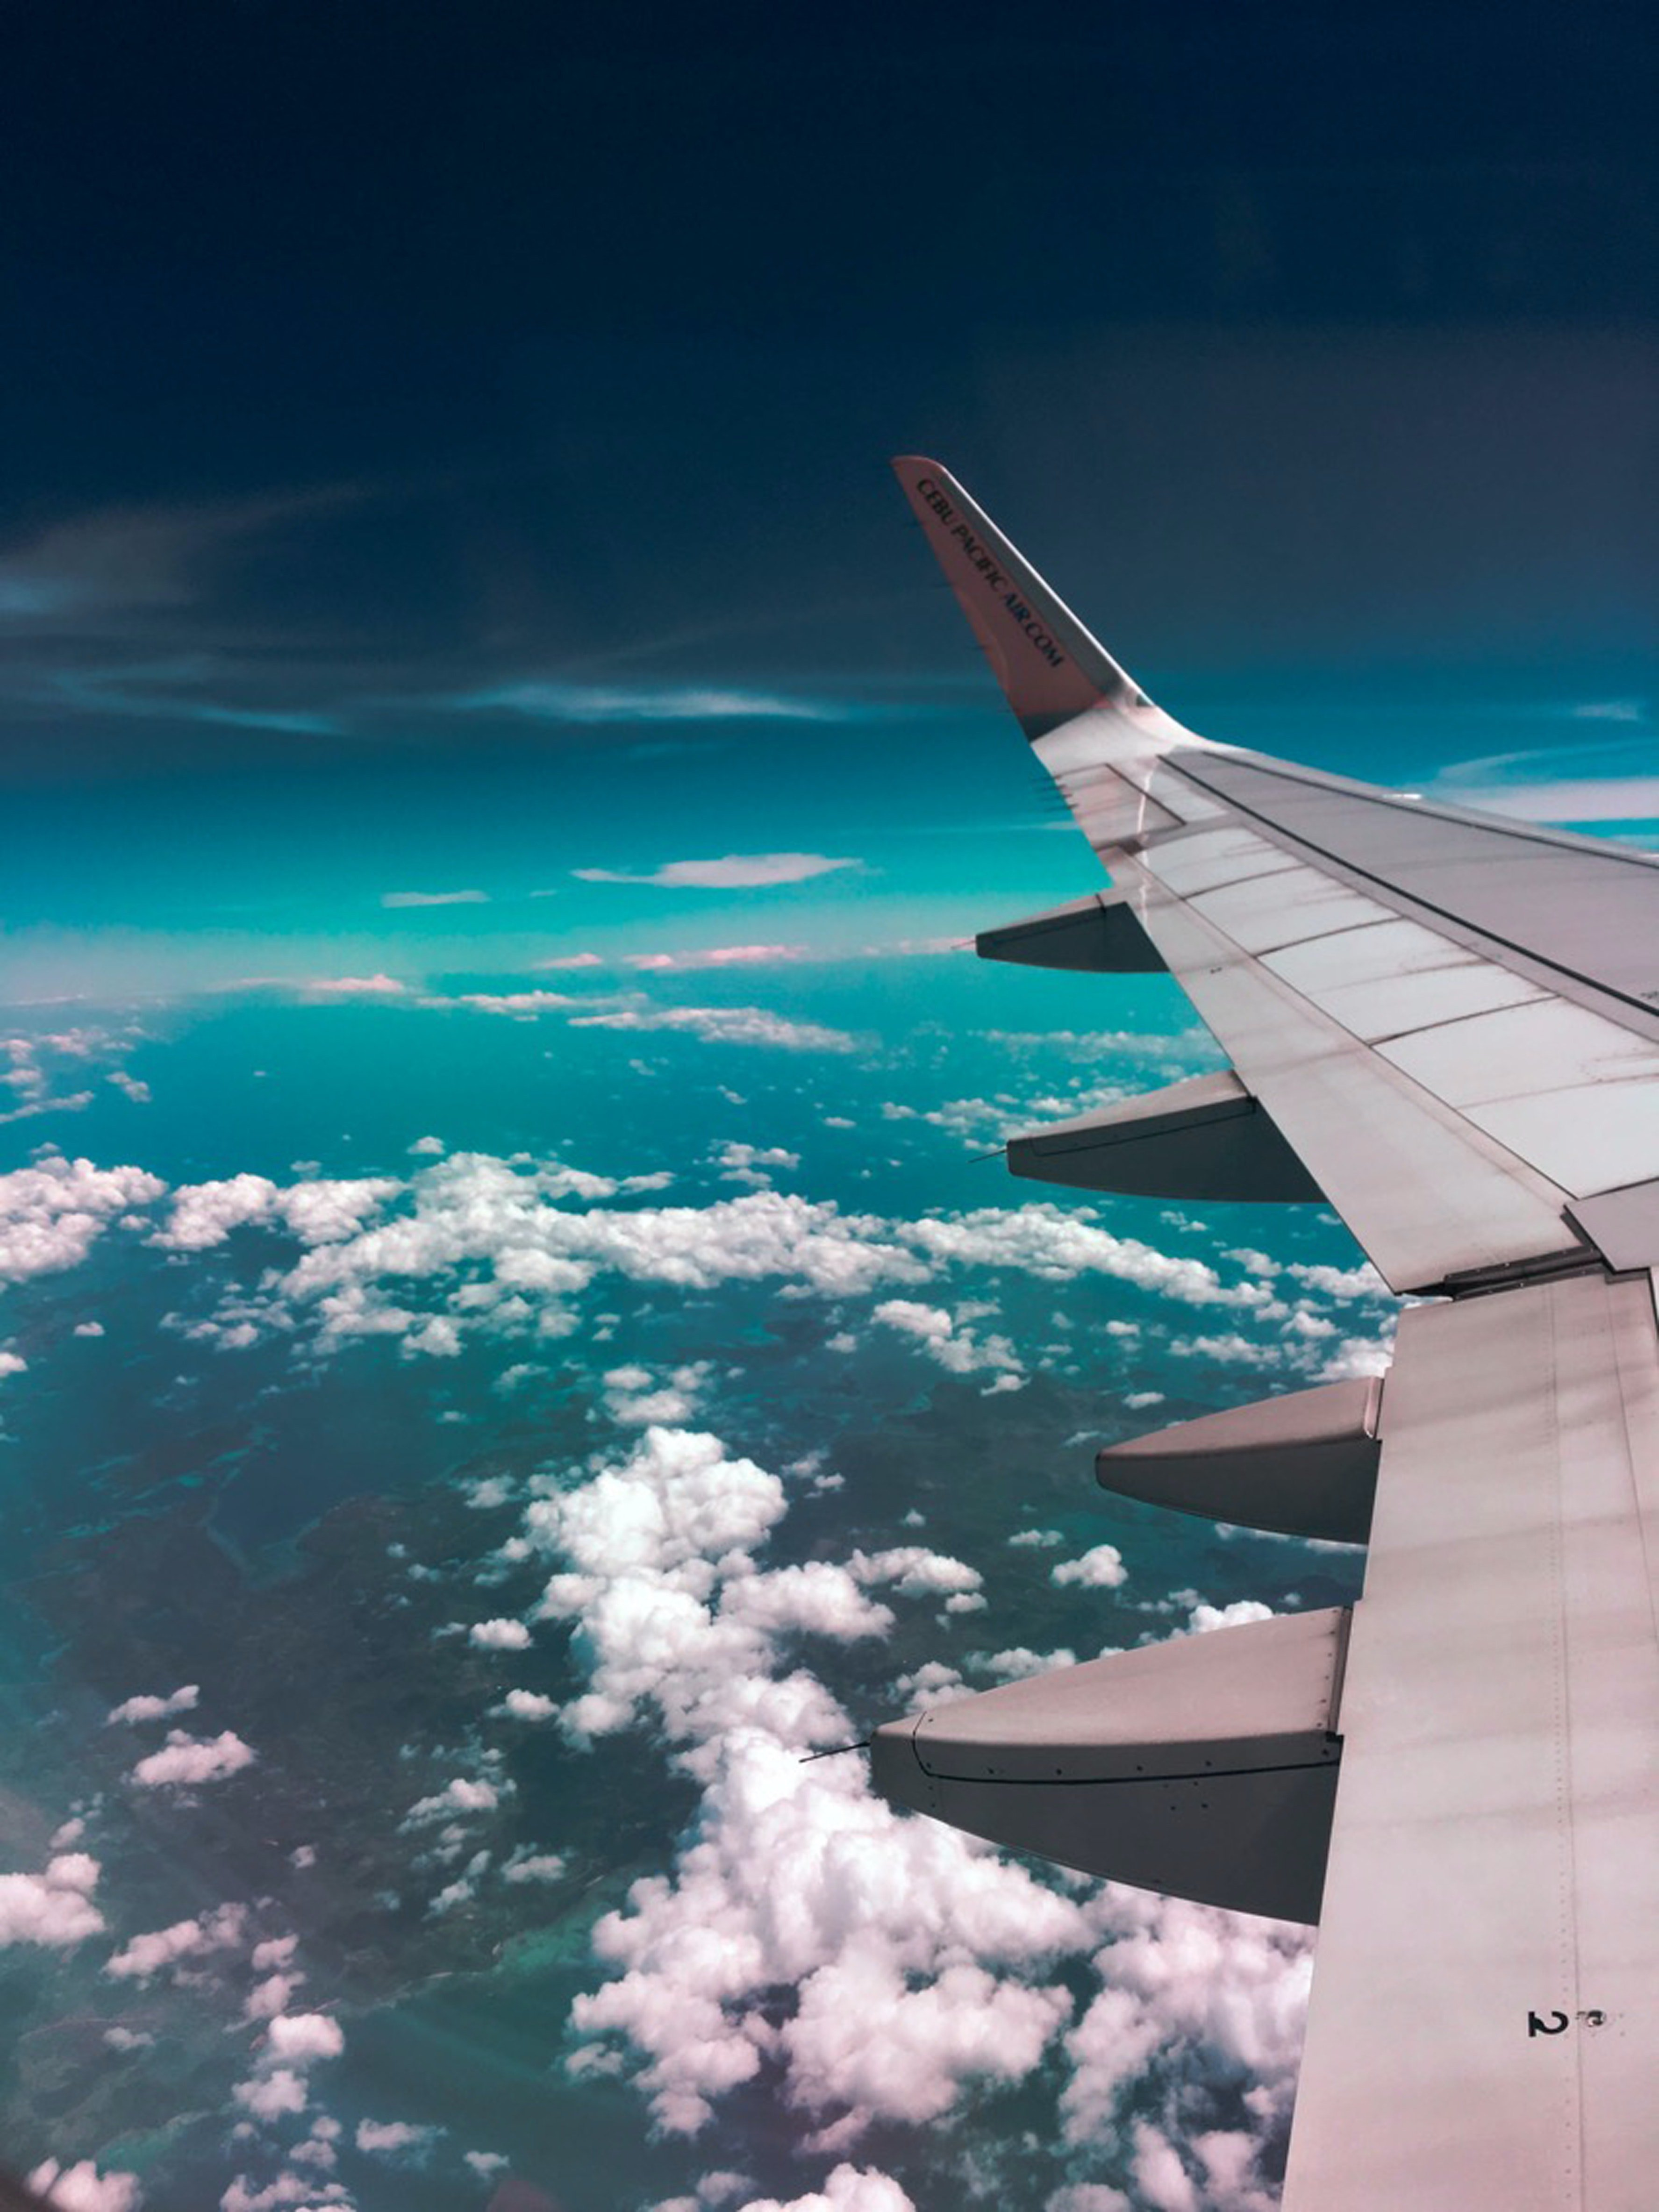 The airplane climbed too high and passed the pearly gates of heaven. | Photo: Pexels